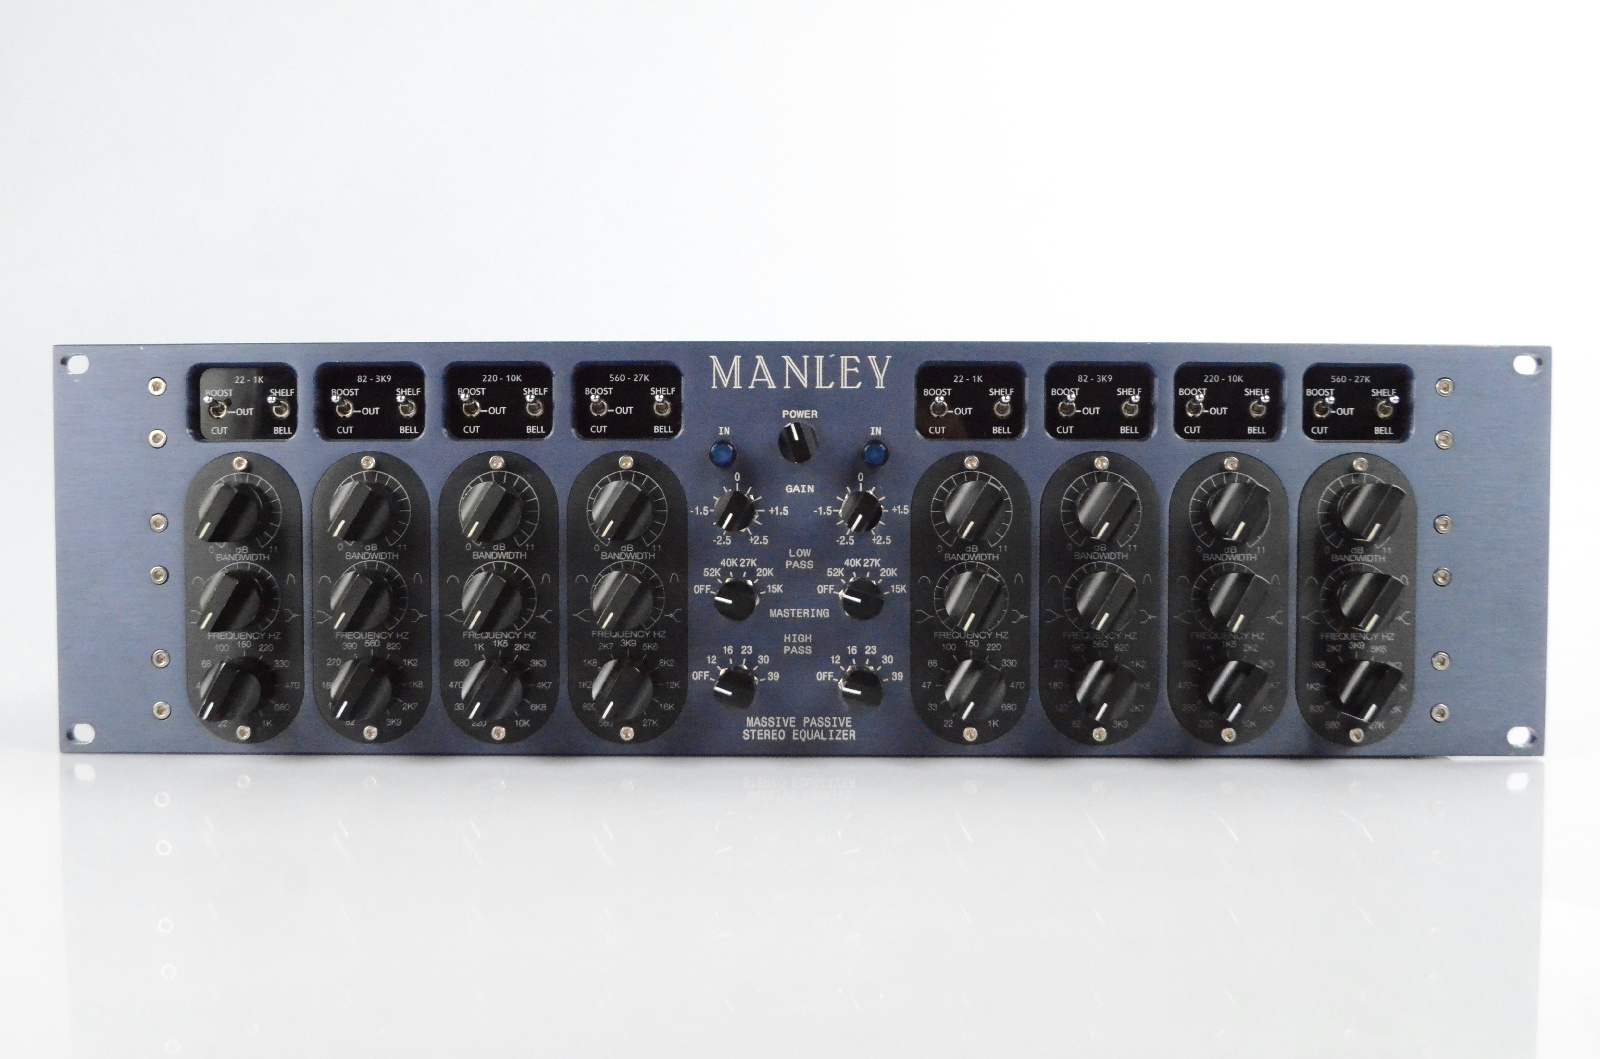 Manley Mastering Massive Passive Stereo Dual Channel Equalizer EQ #33762